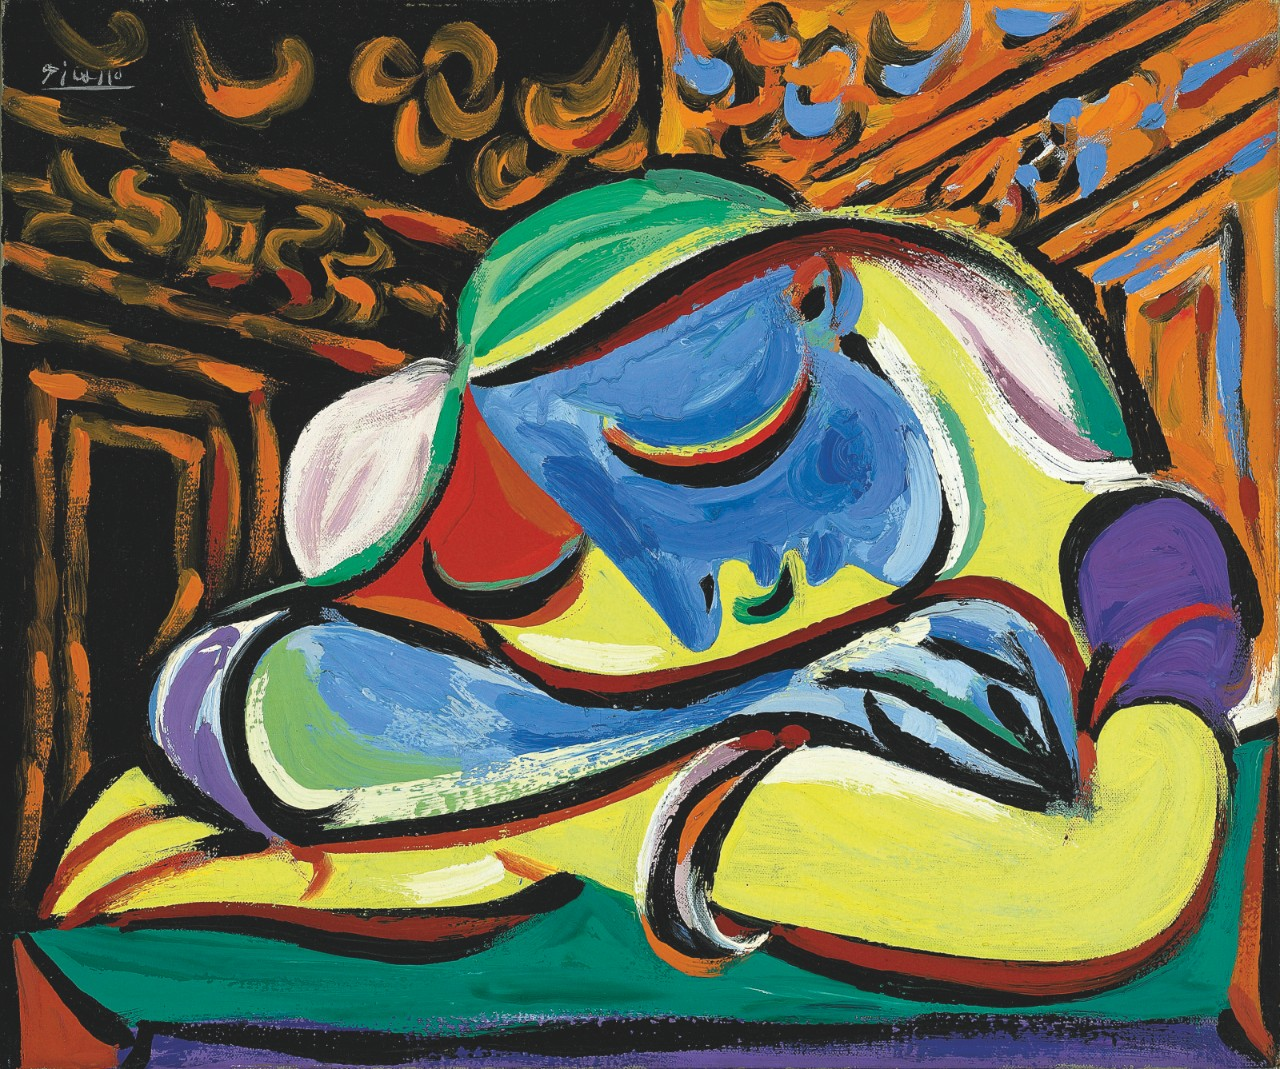 A colourful painting of a woman resting her head on her arms, eyes closed.